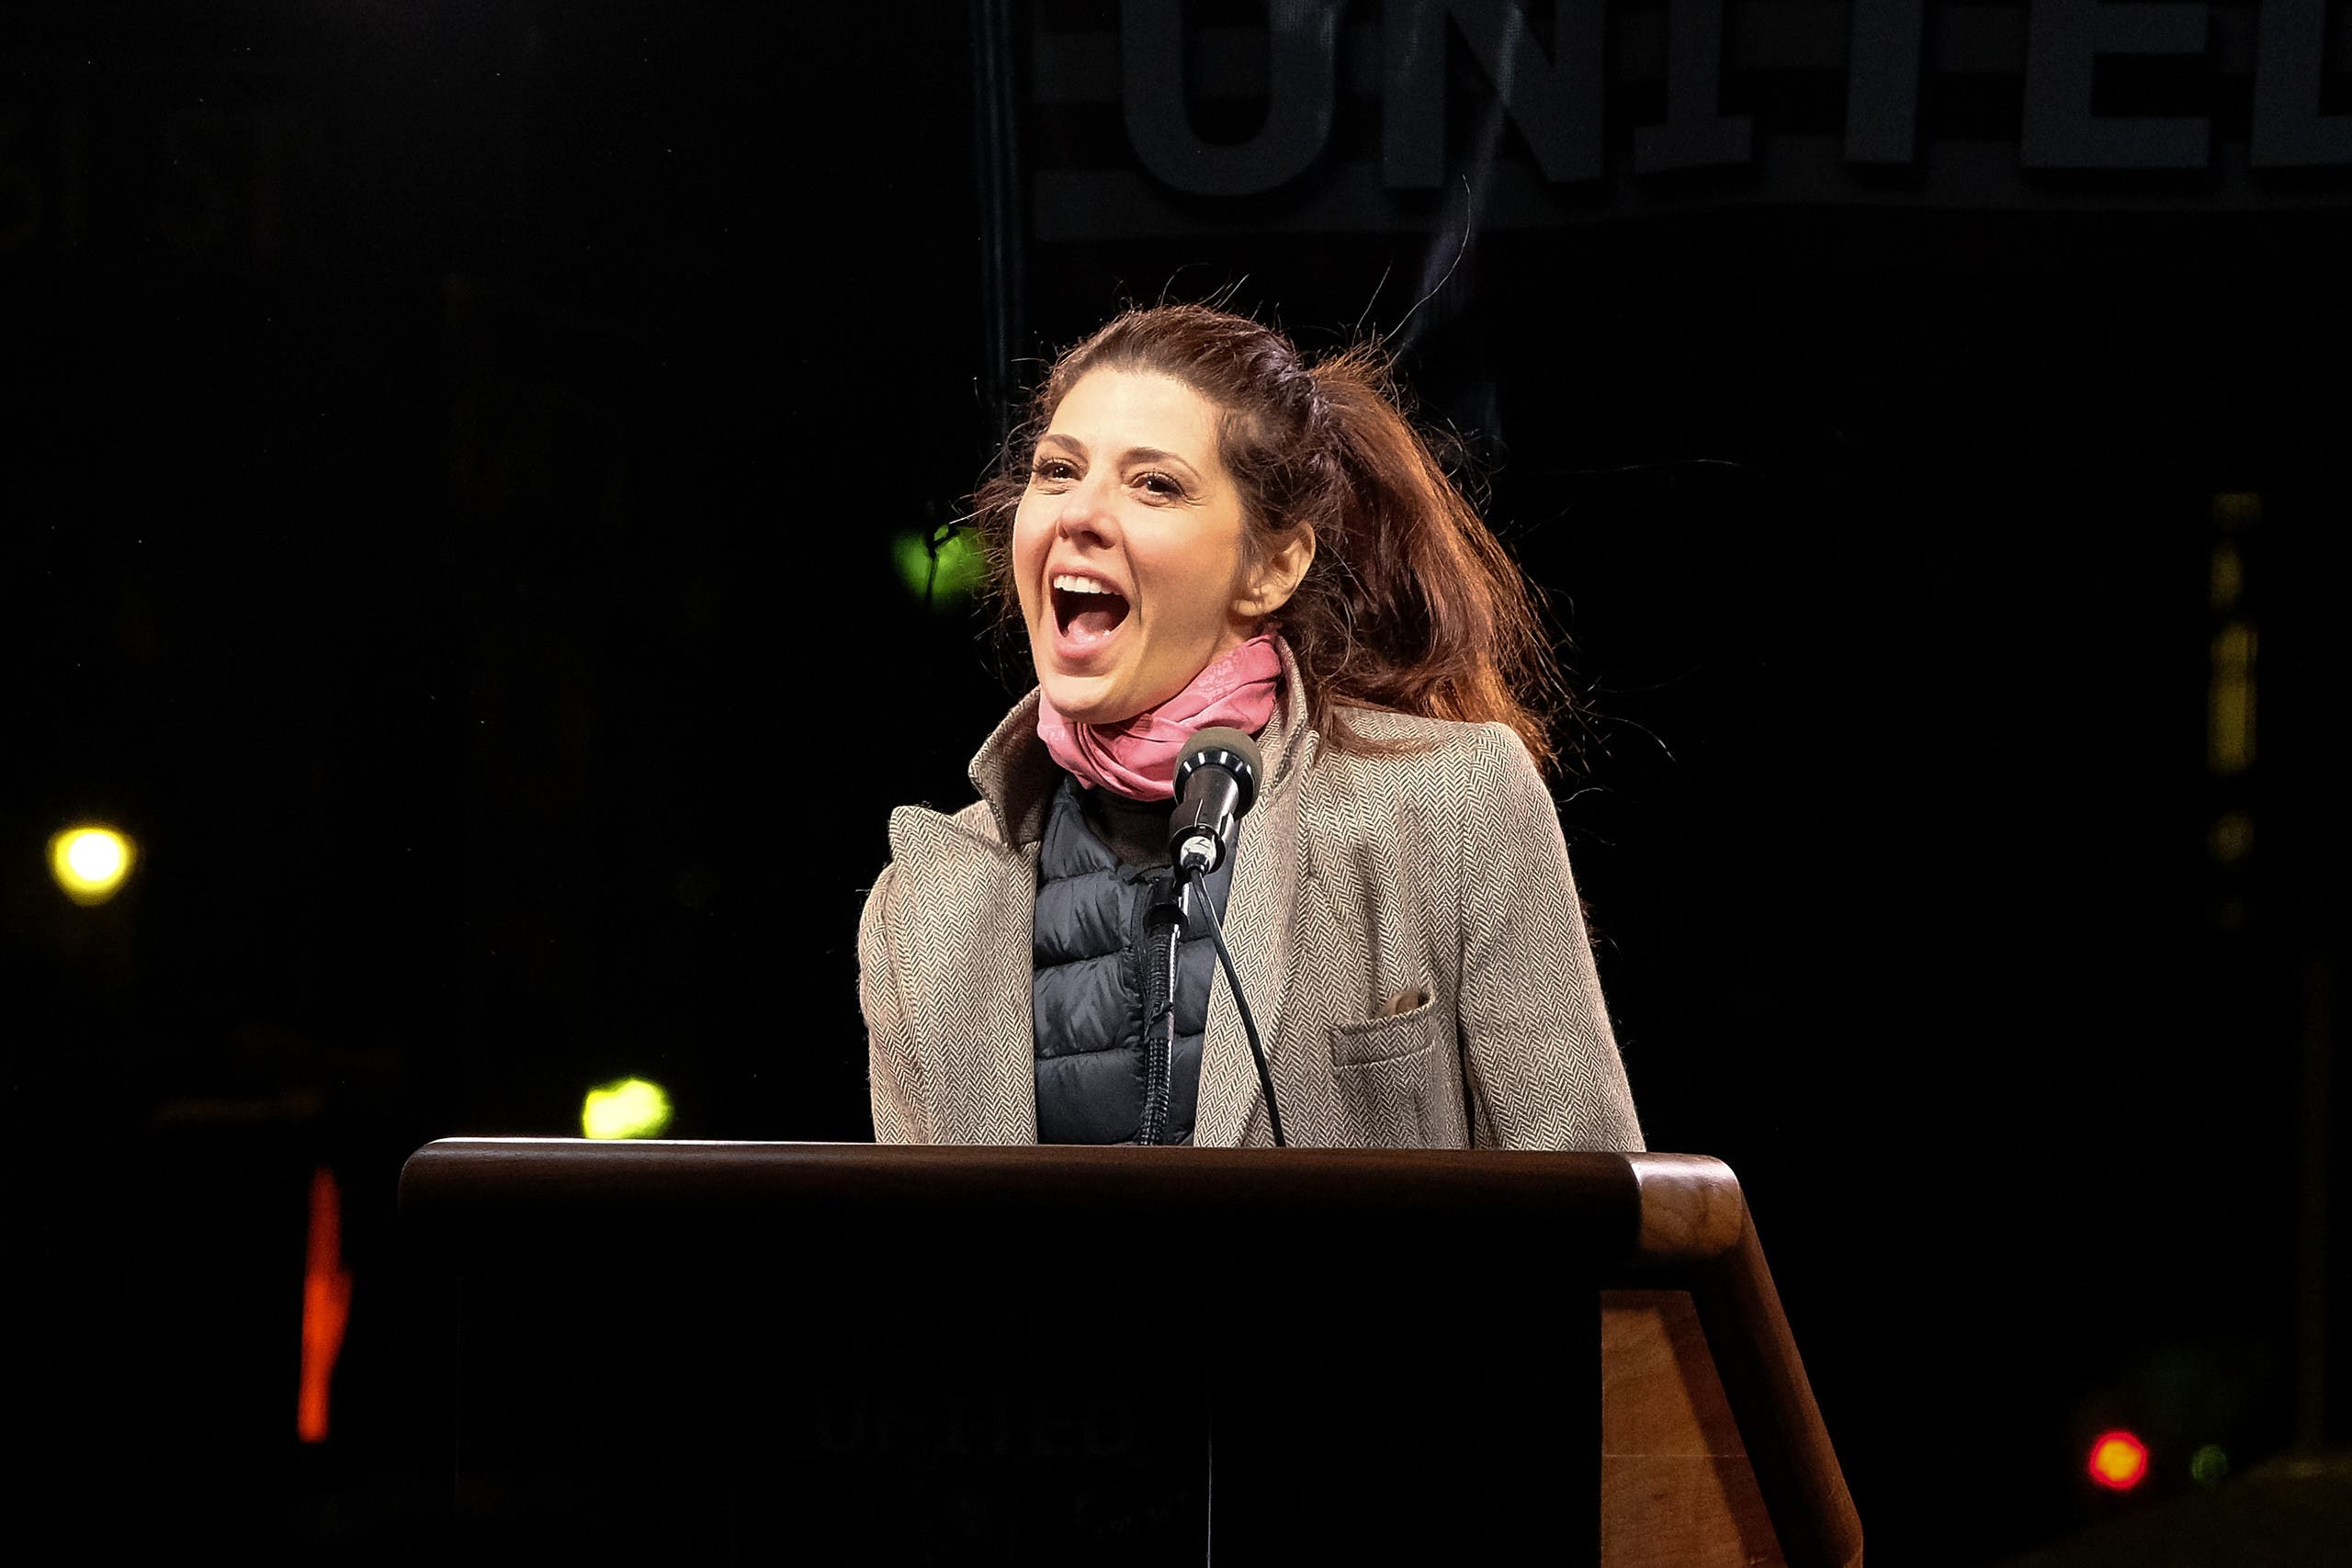 Marisa Tomei speaks onstage during the We Stand United NYC Rally outside Trump International Hotel & Tower on January 19, 2017 in New York City. (AFP)